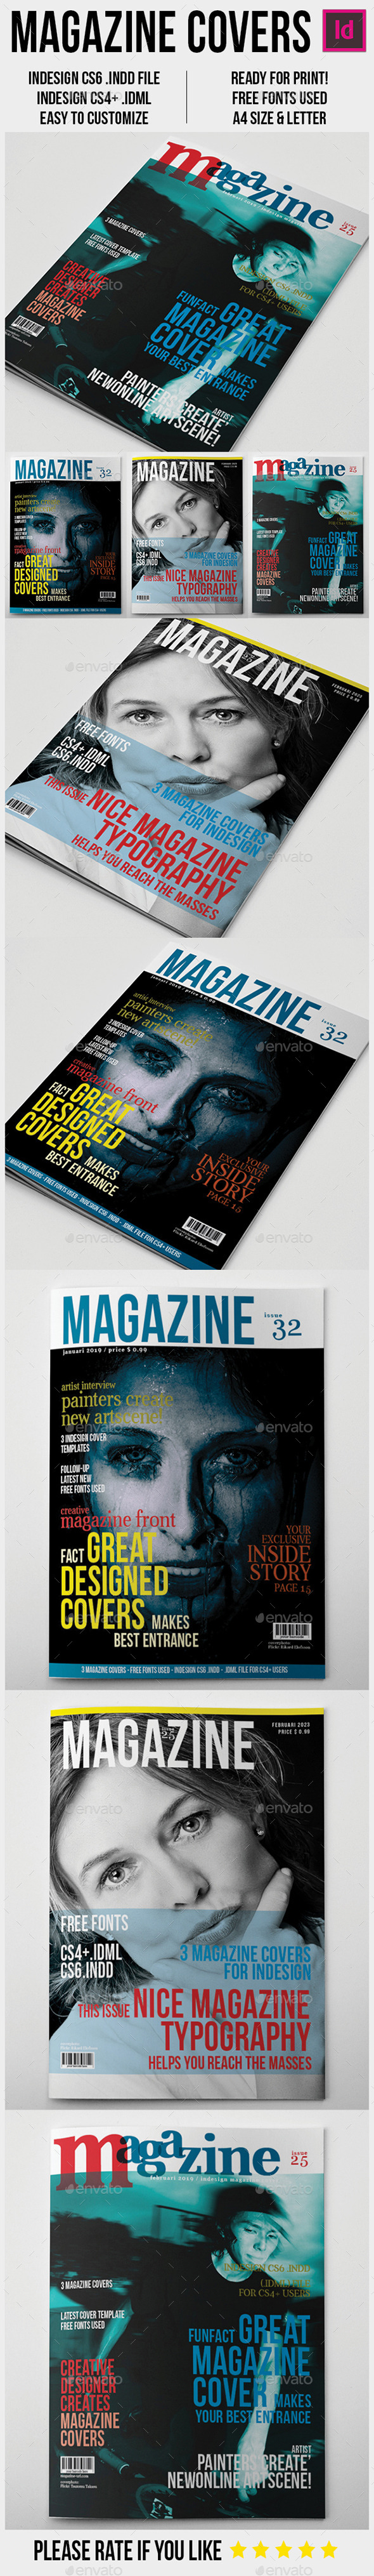 Magazine Covers Template A4 - Magazines Print Templates